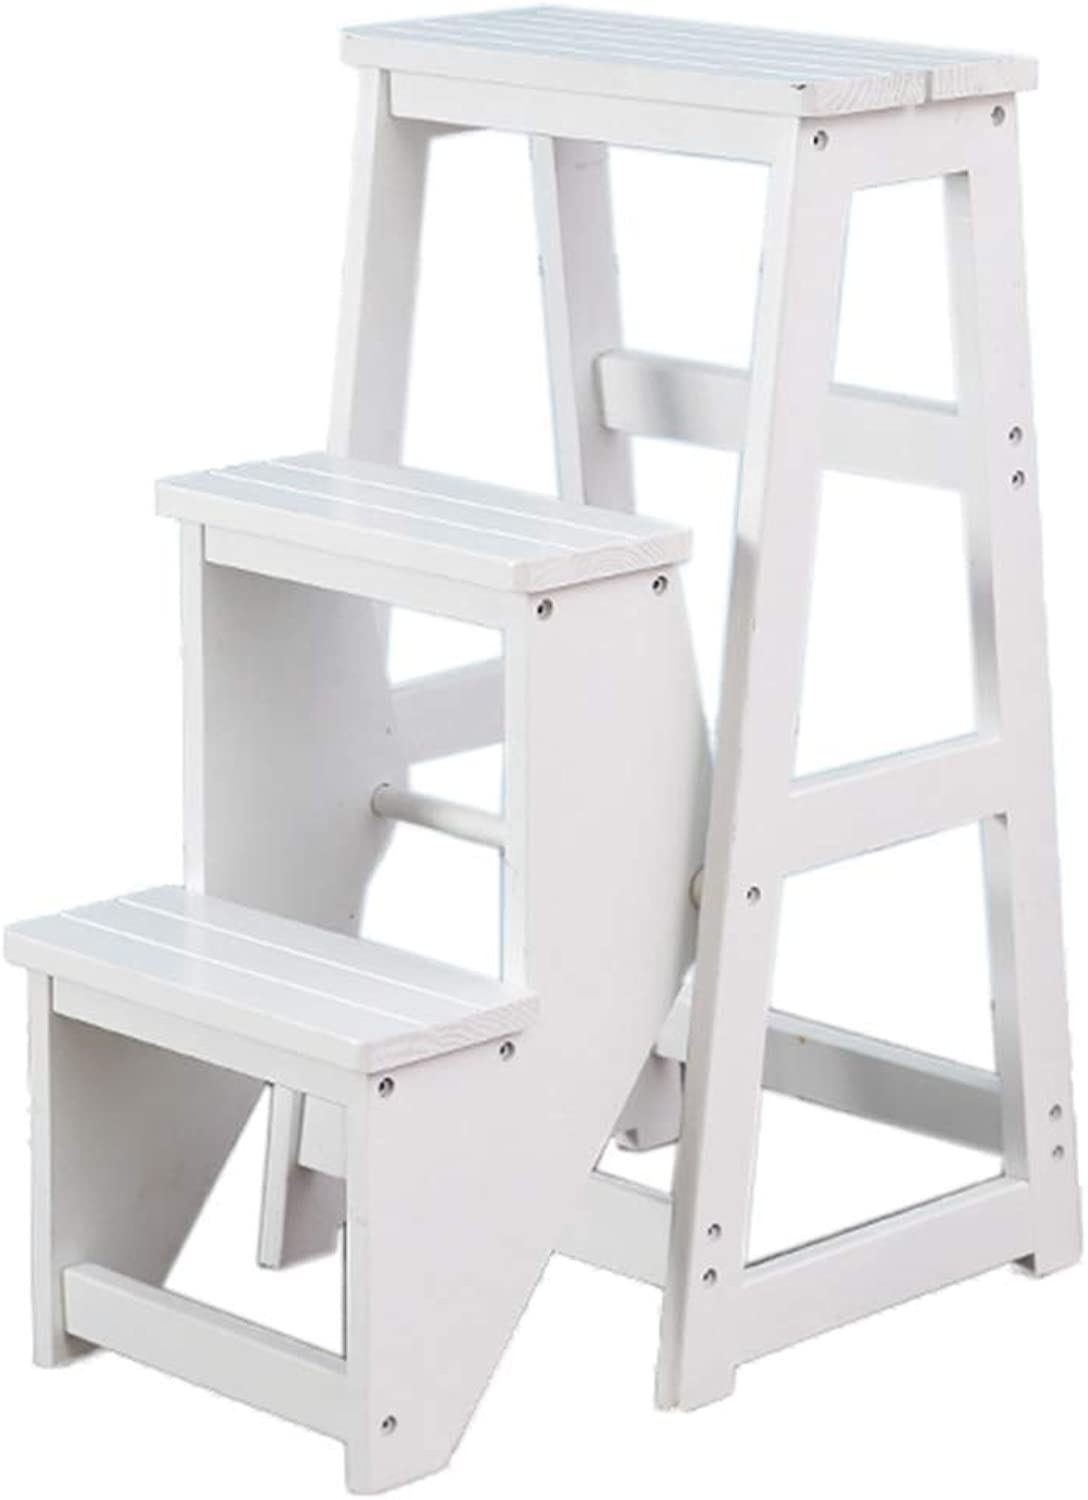 Remarkable Folding Ladder Step Stool Wooden 3 3 3 Step Climbing Dualuse Gmtry Best Dining Table And Chair Ideas Images Gmtryco